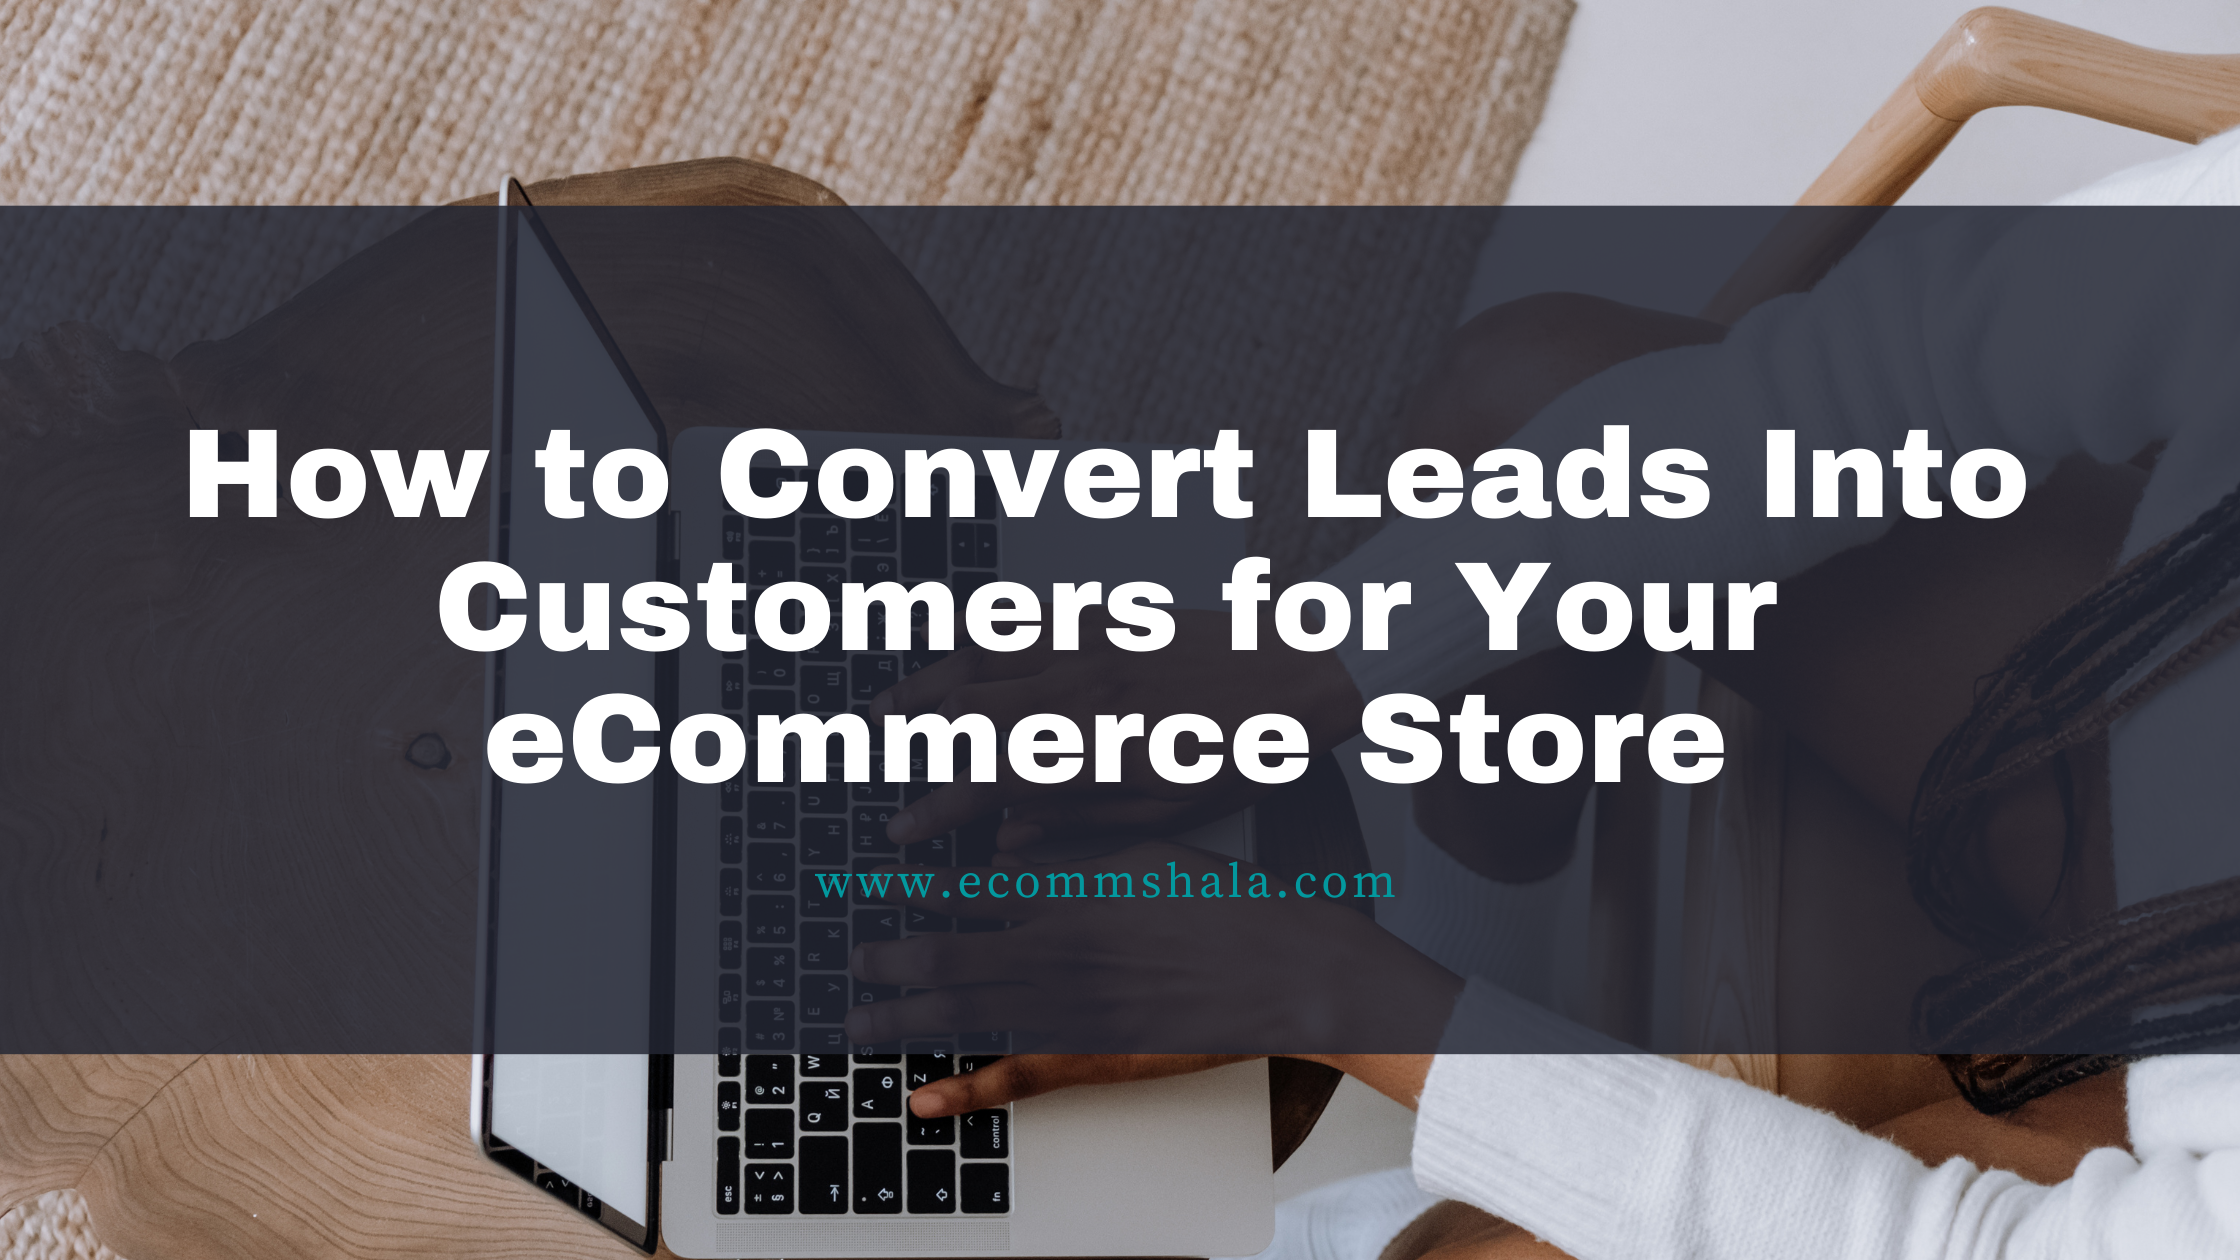 Convert Leads Into Customers for Your eCommerce Store